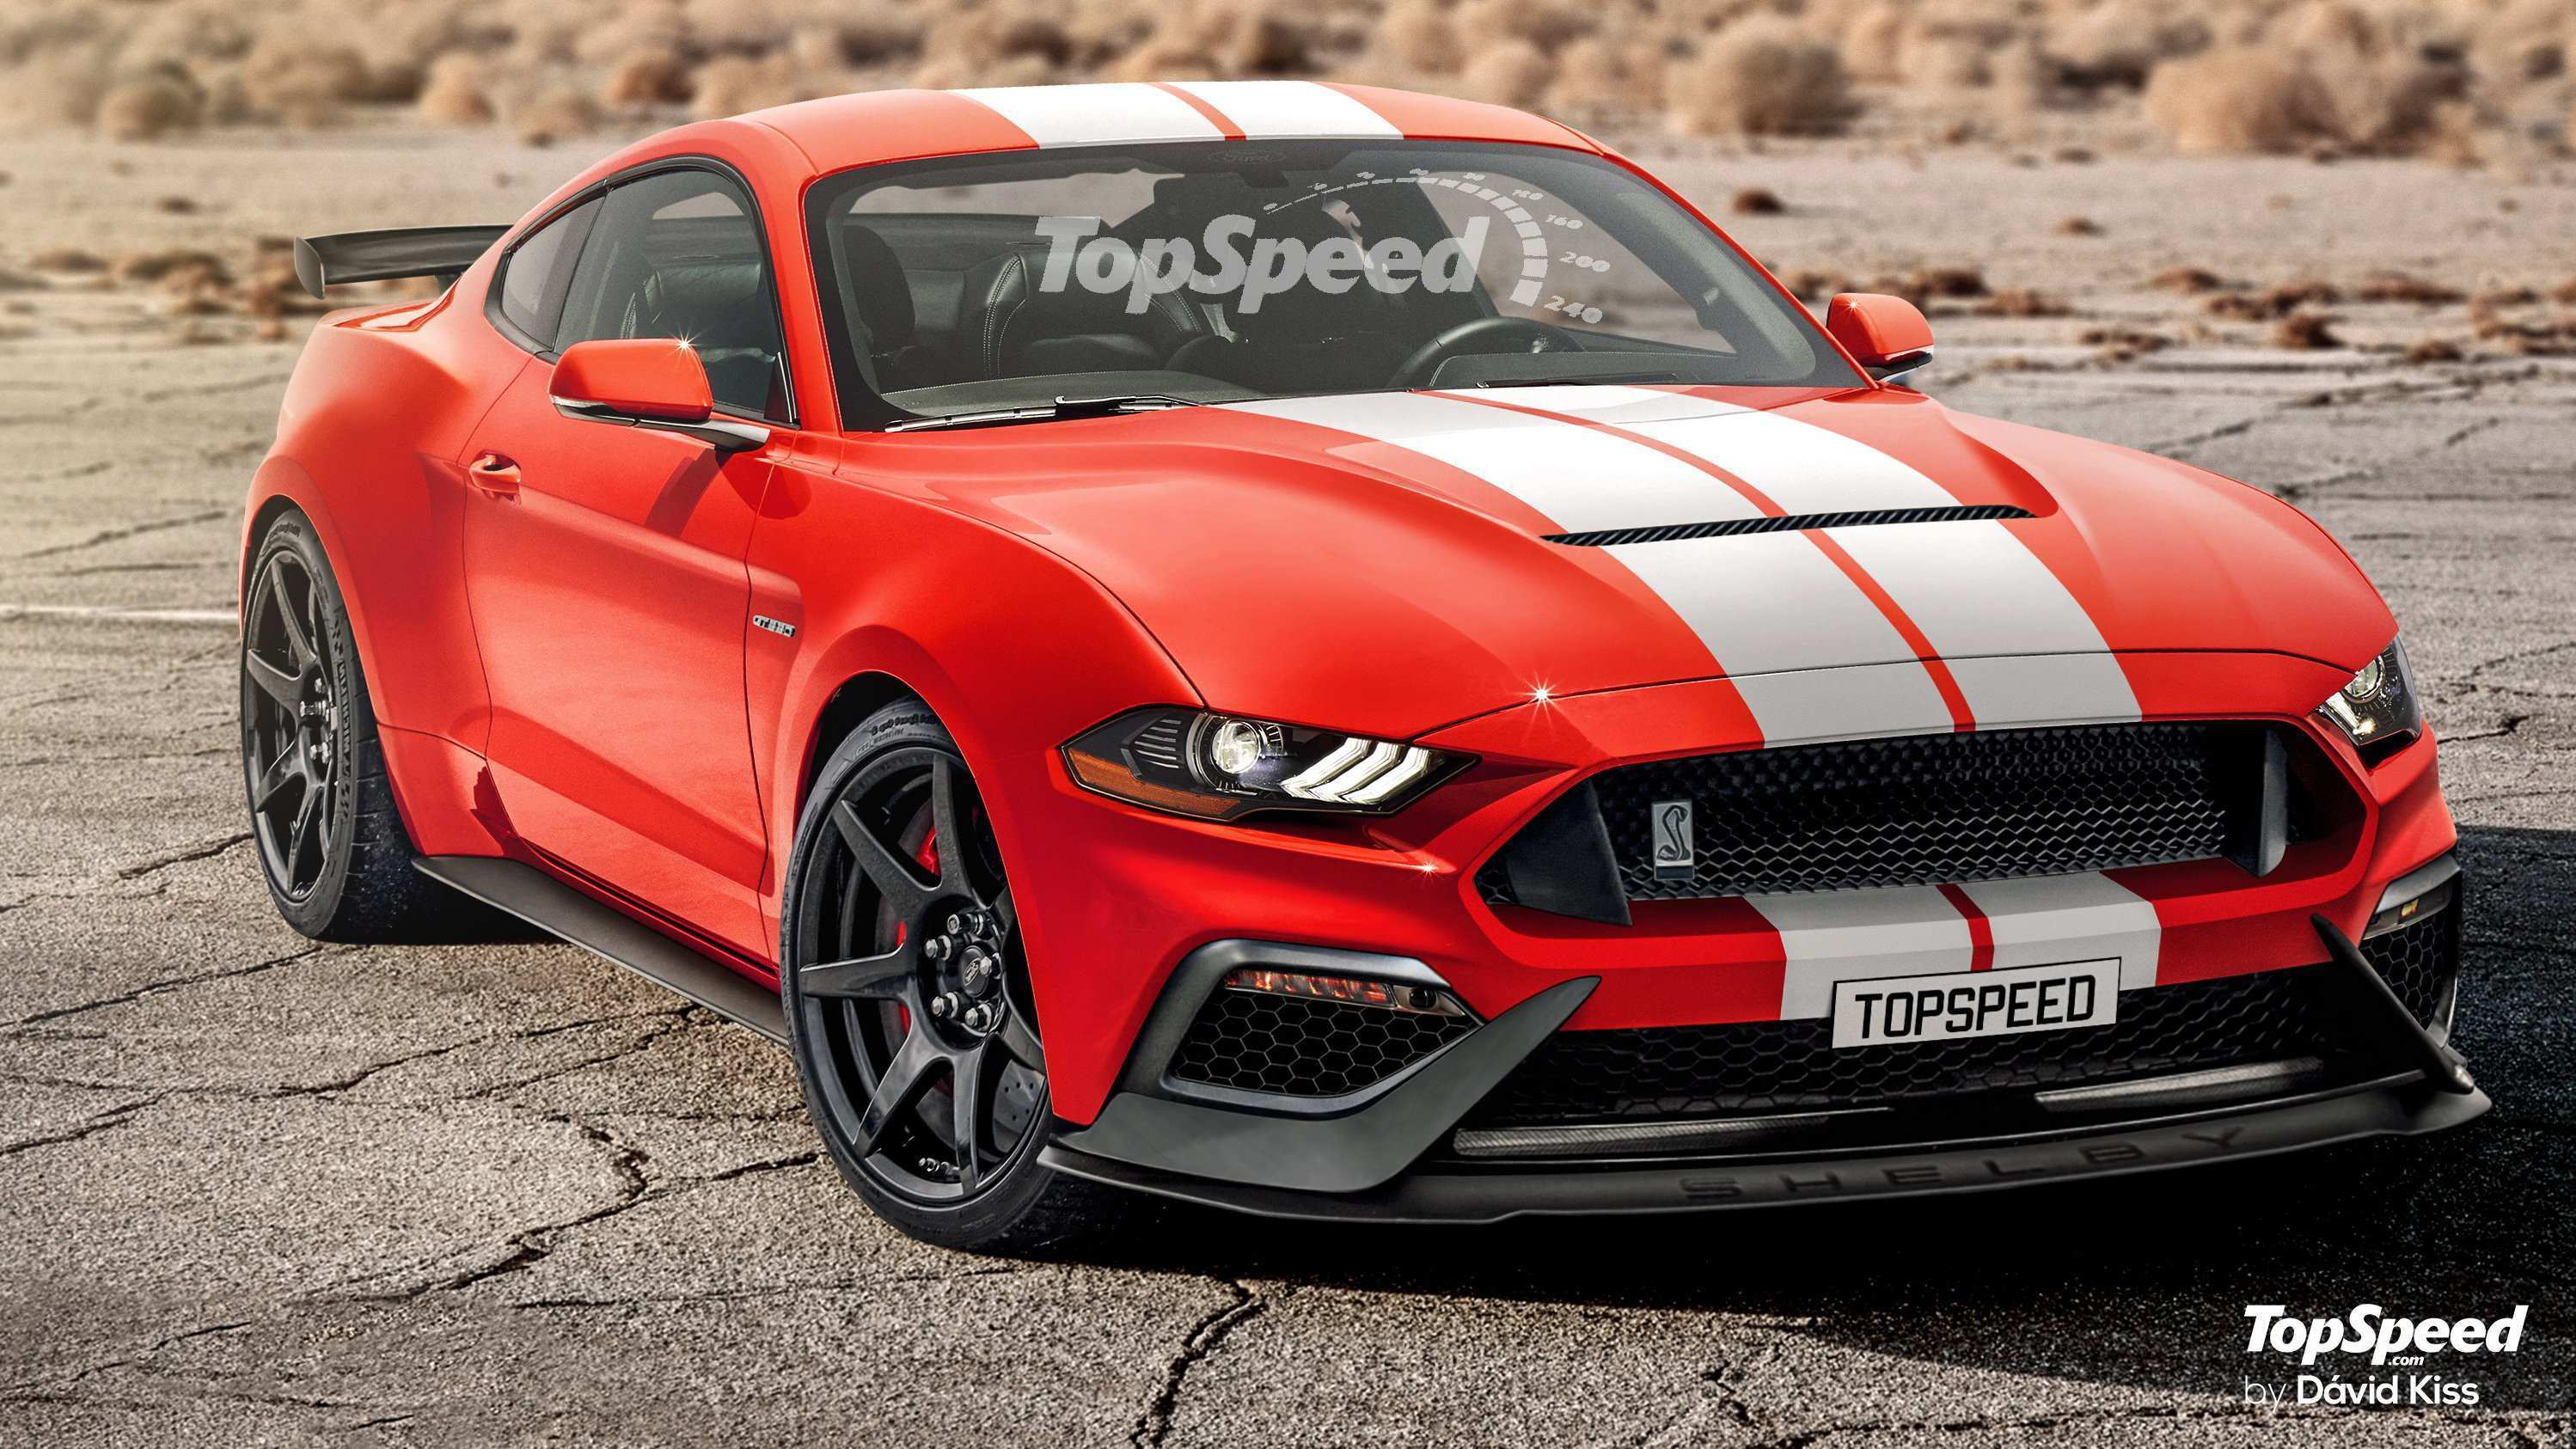 74 The Best 2020 The Spy Shots Ford Mustang Svt Gt 500 Exterior